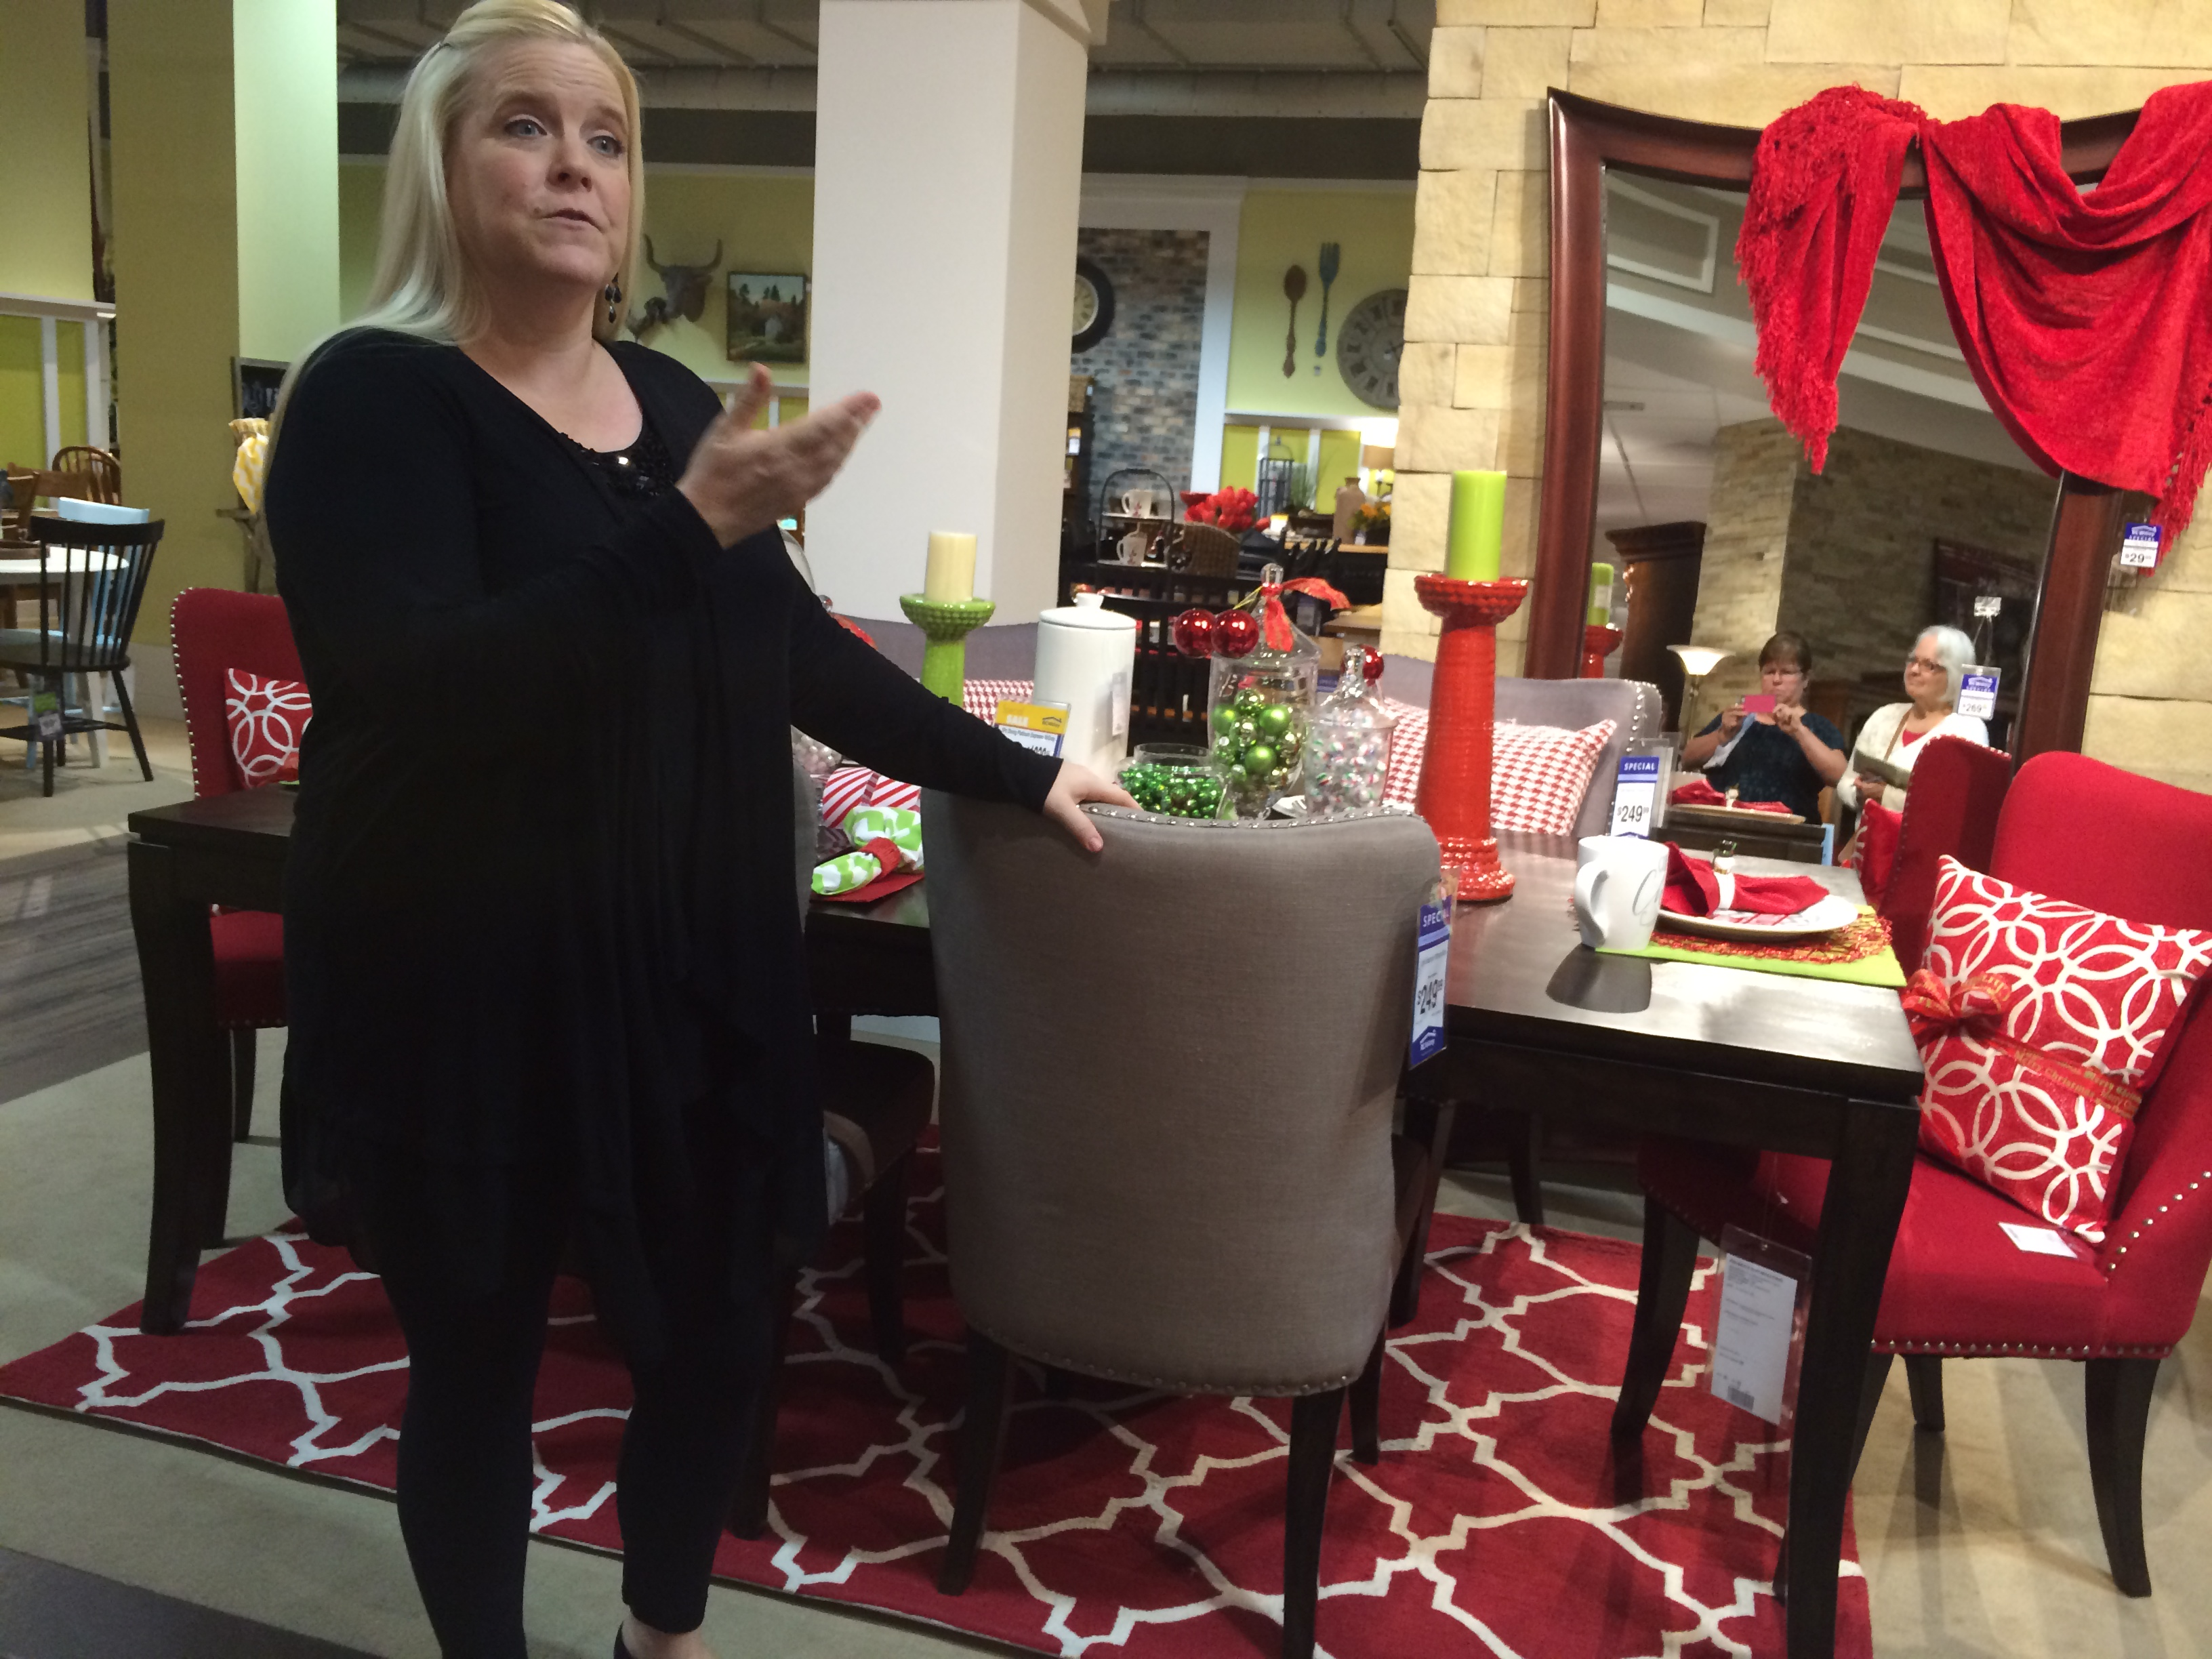 rc willey sectional small space sectional sofas leather grey store decorator jen dix created a christmas tablescape to show off some of the accent pieces and accessories at rc willey brandon